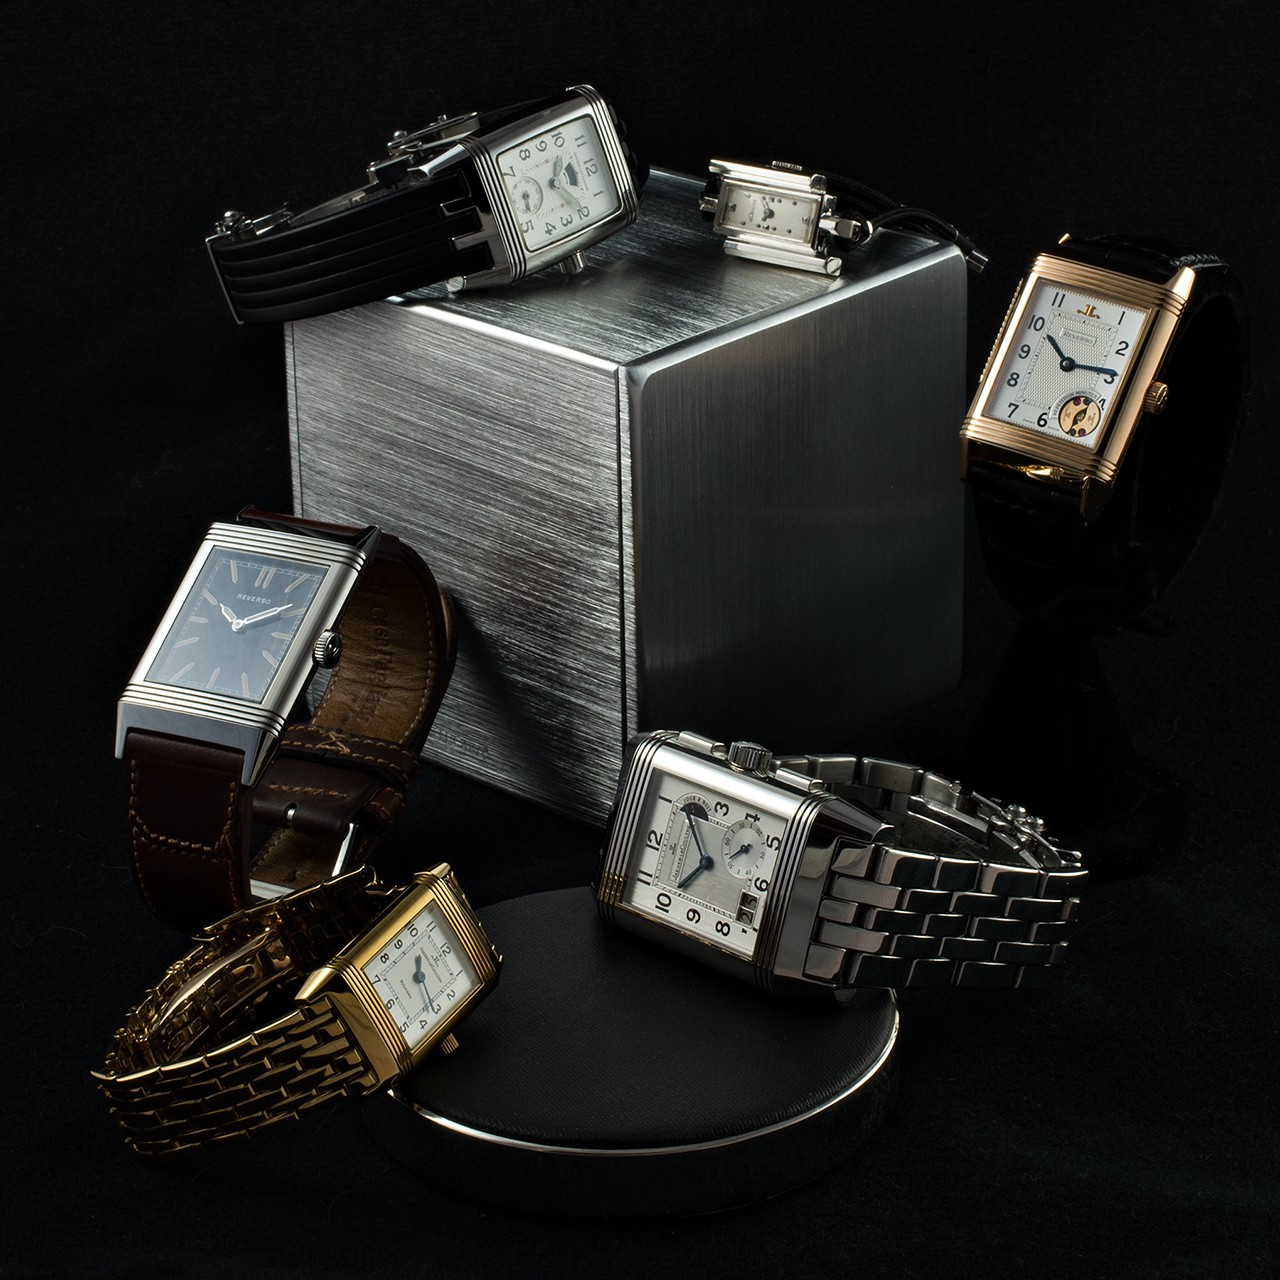 A Partial View of GaryG and MrsG's Collection of Jaeger-LeCoultre Watches